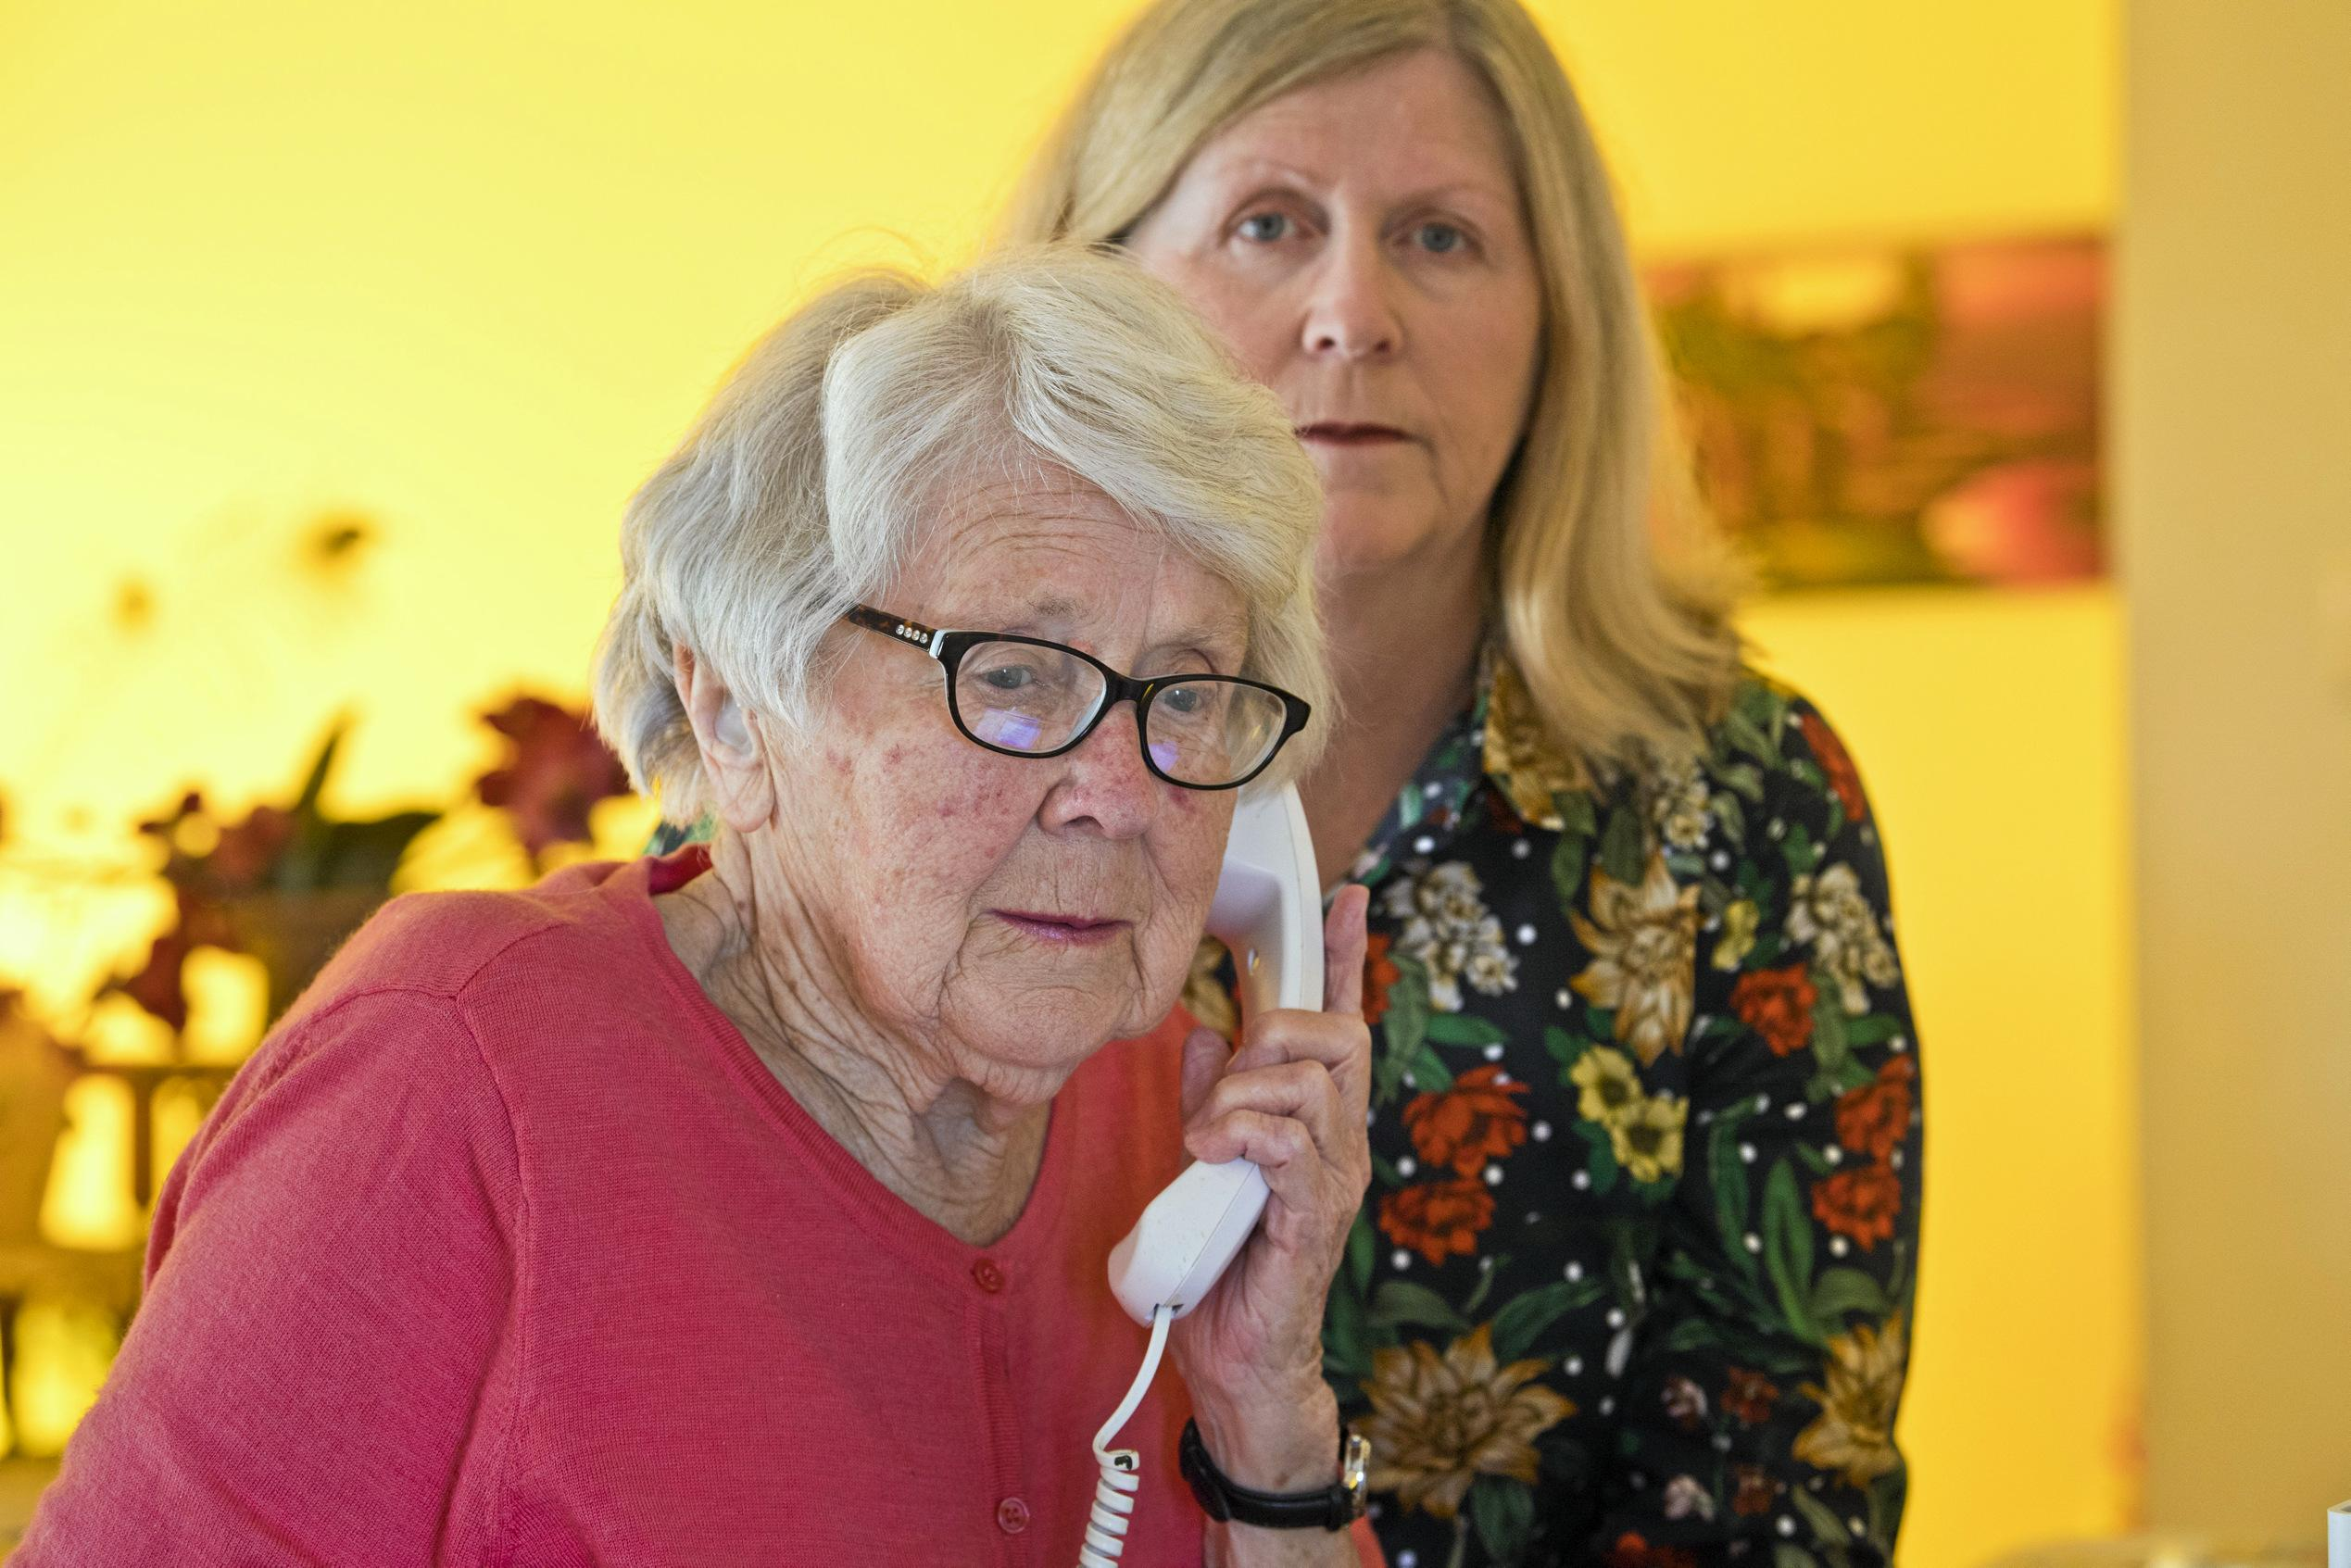 Patricia Woods, with her daughter Mary Cosh, is concerned about losing her CapTel phone service that she uses to overcome deafness and communicate on the phone after Federal Government changes to the national relay service, Monday, August 19, 2019.